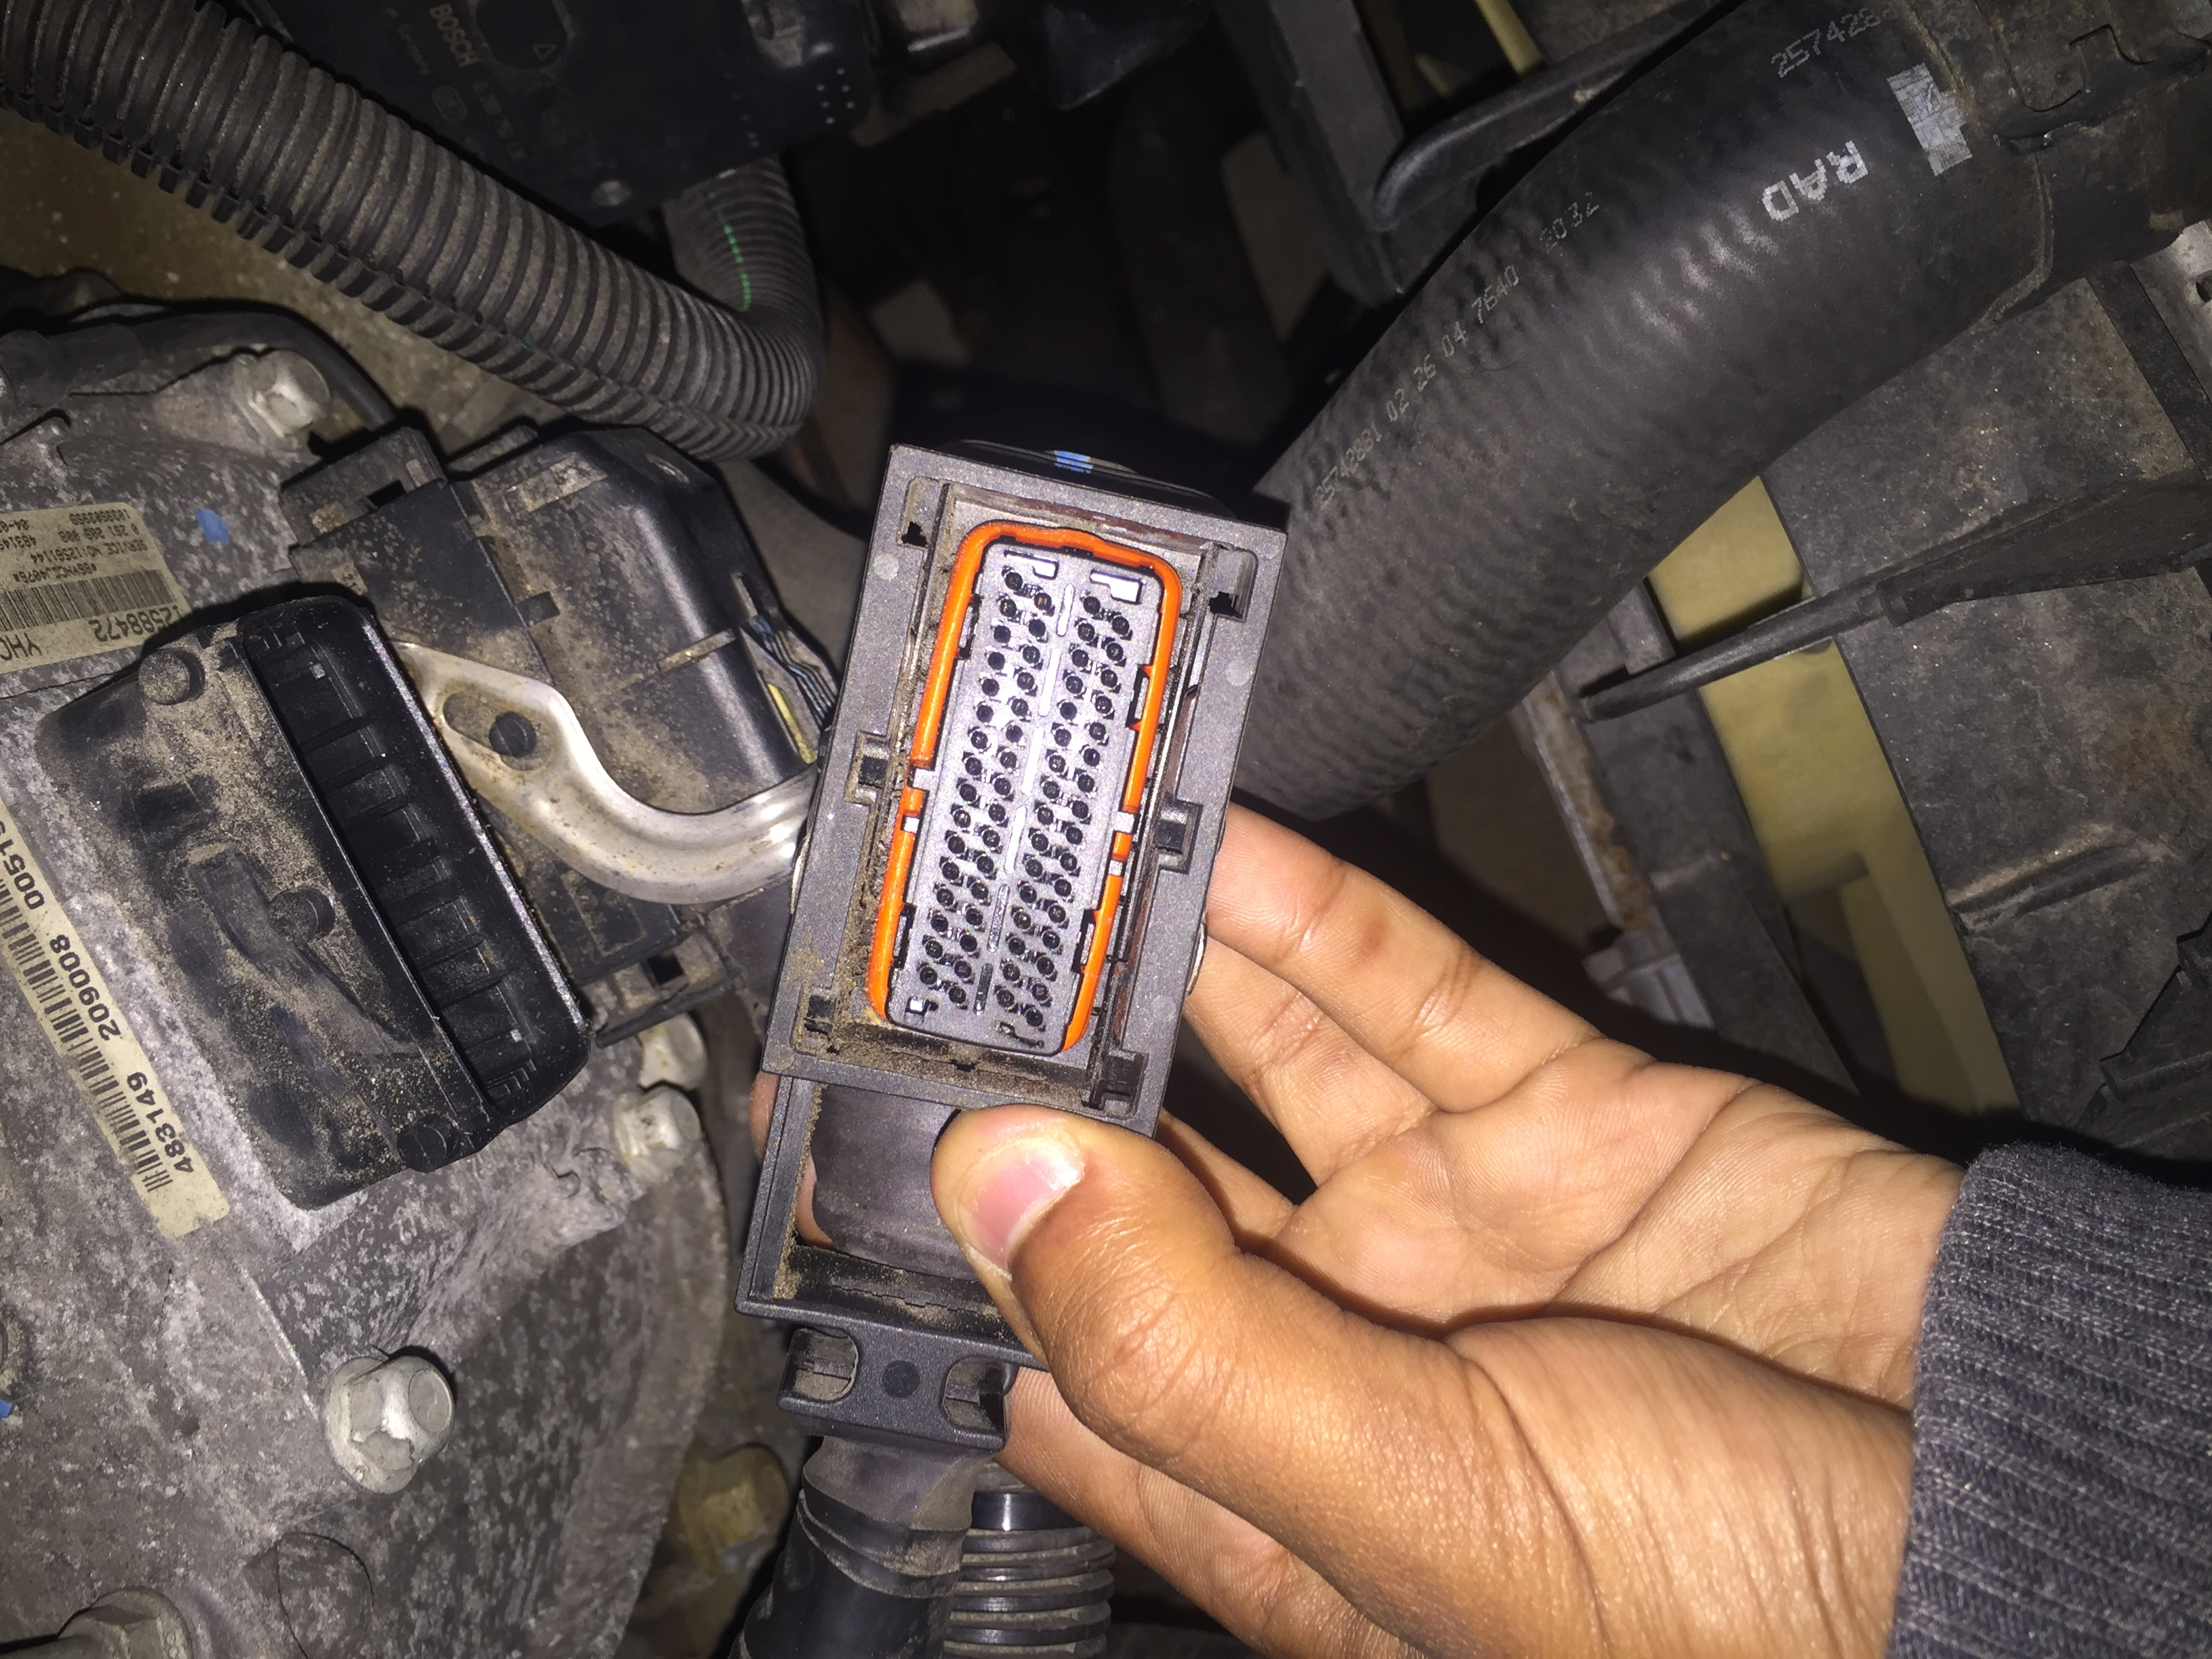 2005 Cadillac Cts Key Stuck In Ignition